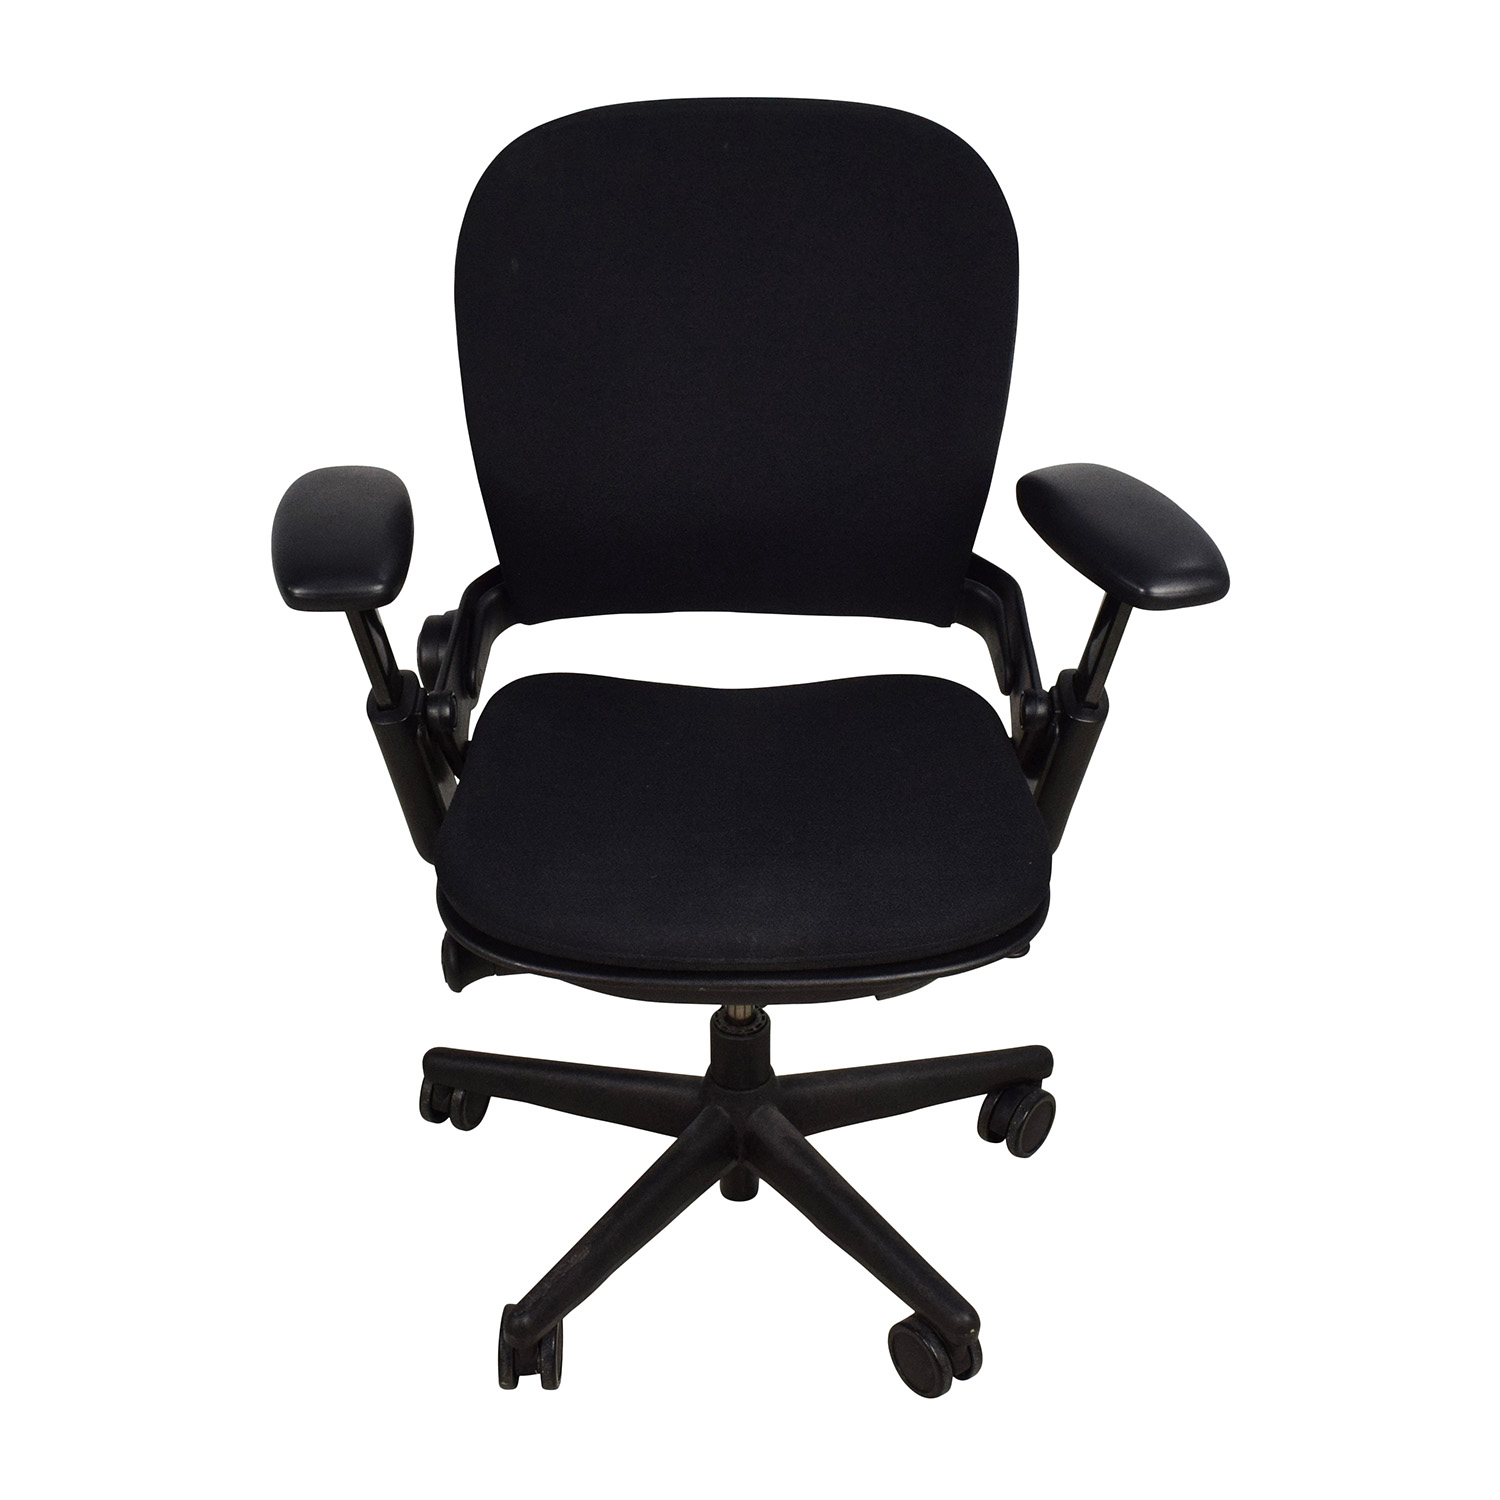 shop Adjustable Black Office Desk Chair  Home Office Chairs